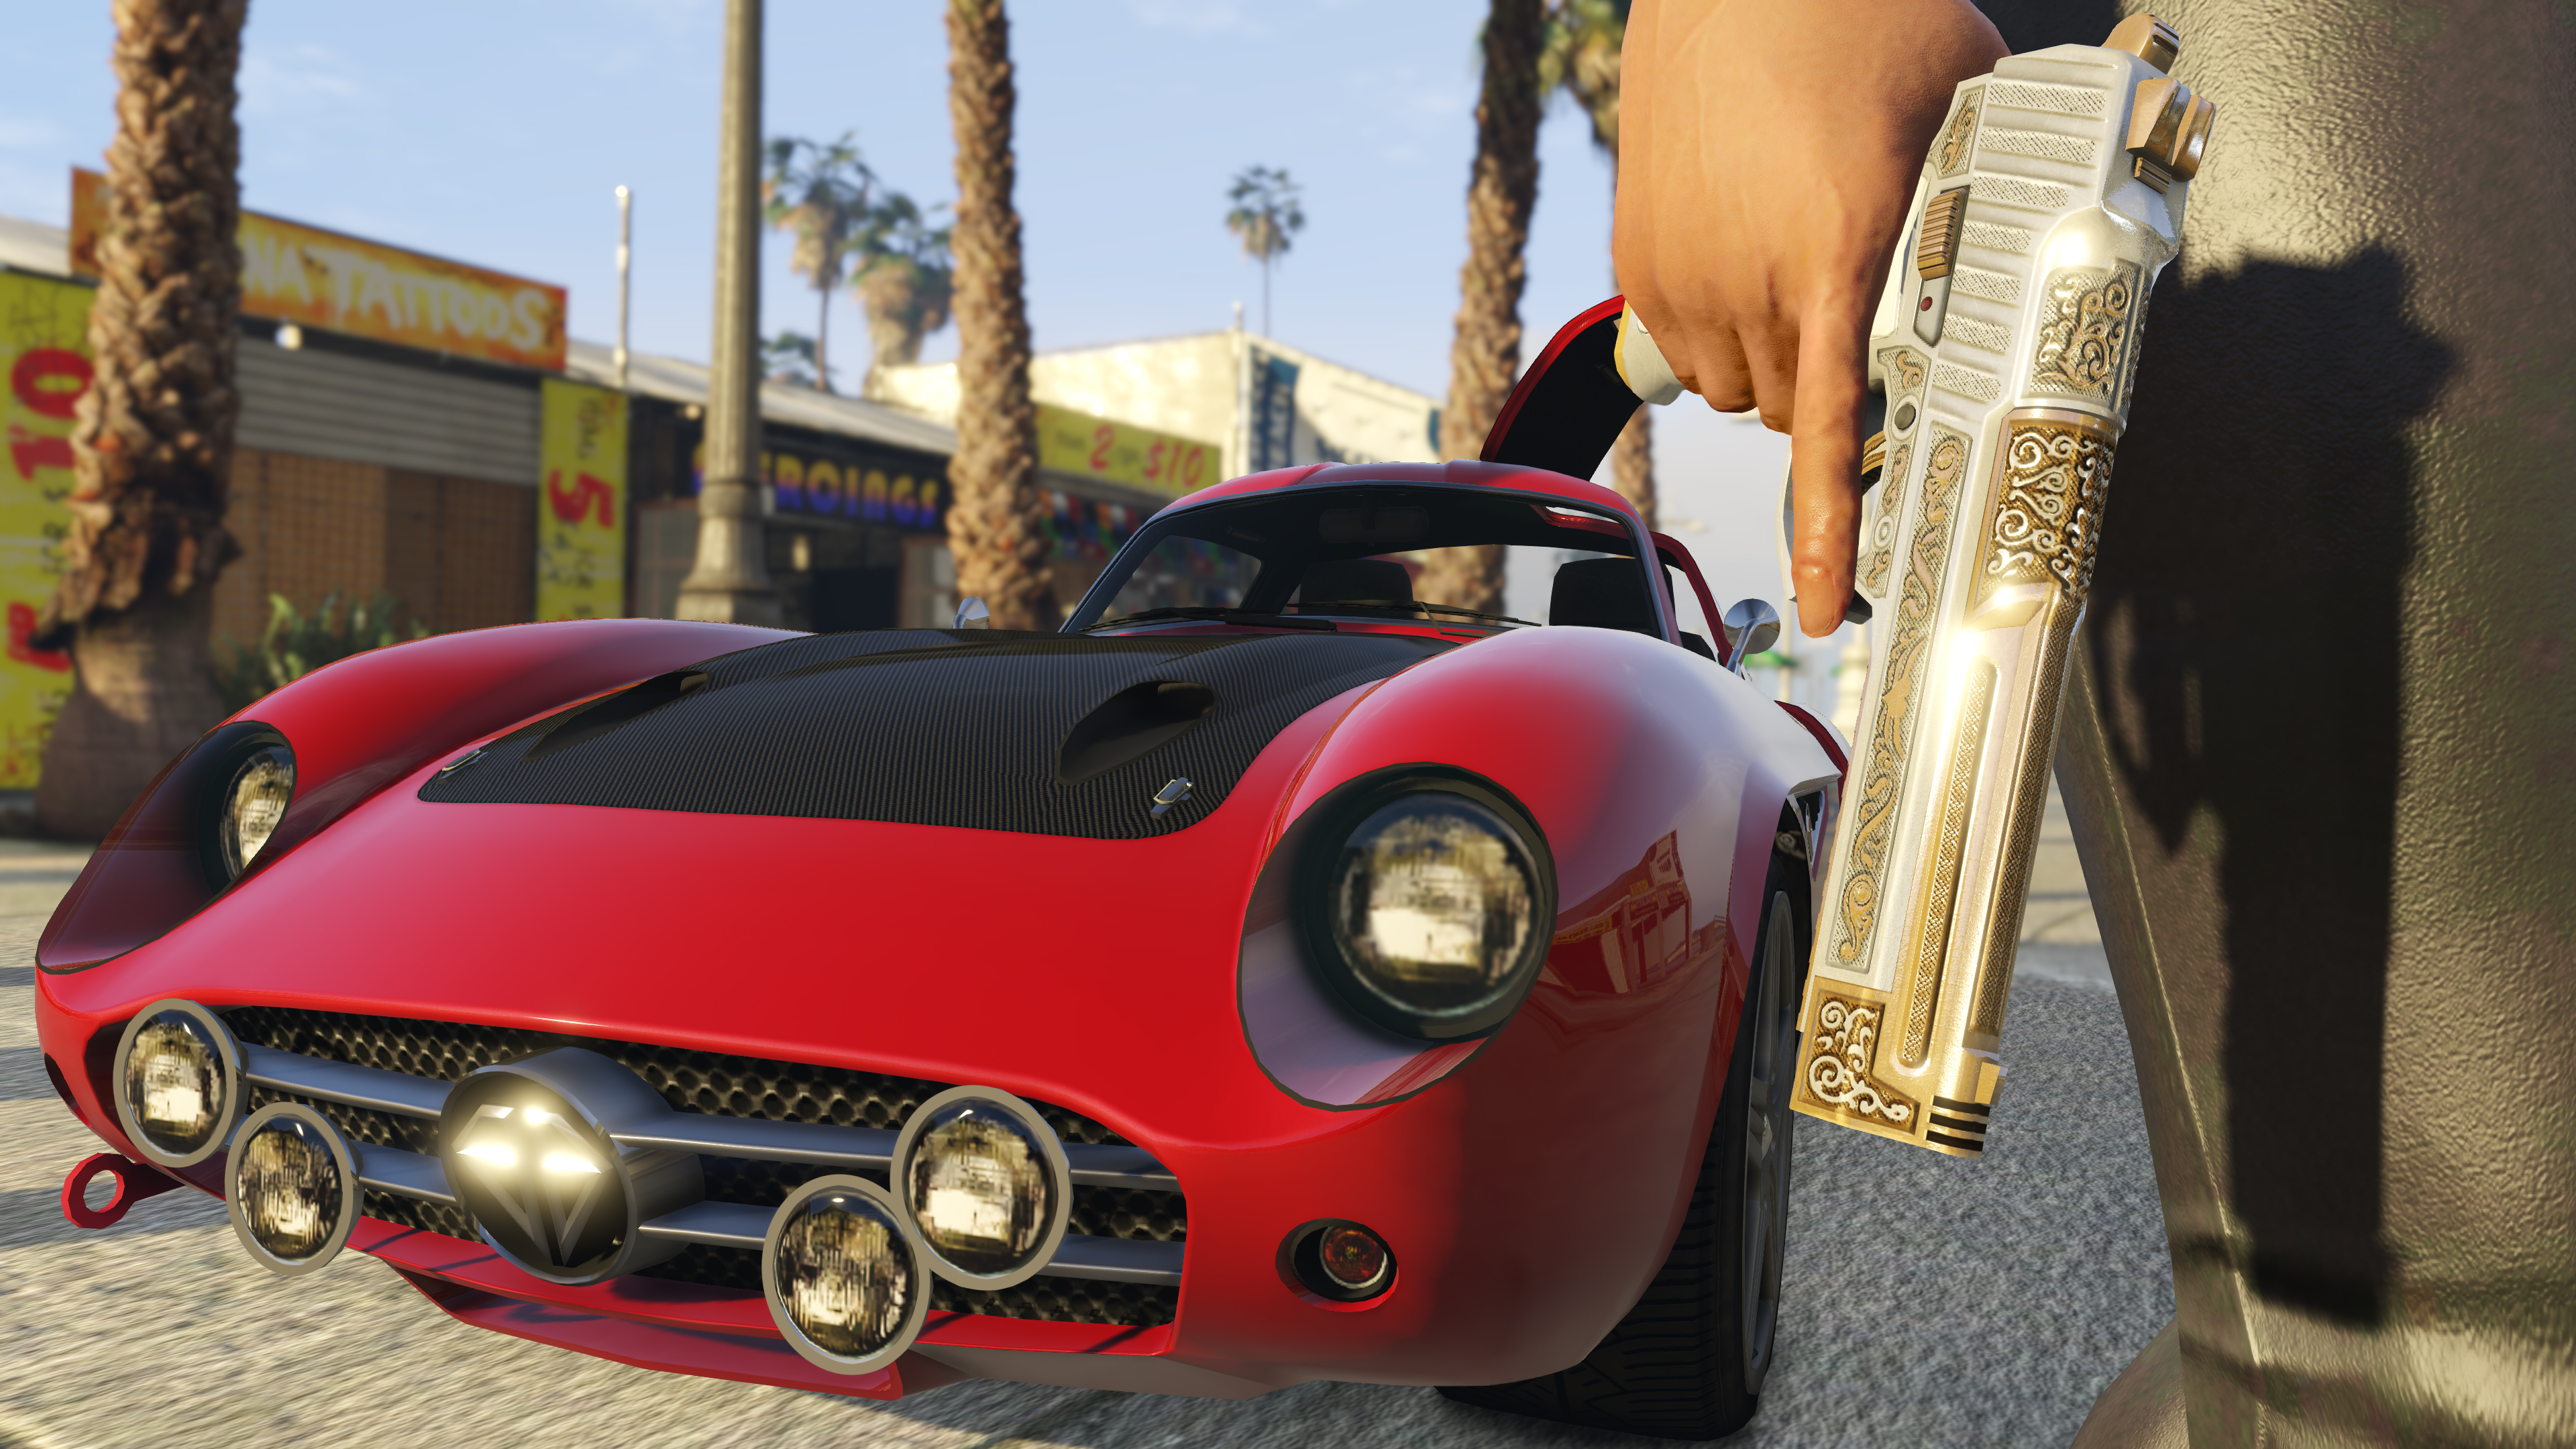 What will the next GTA Online update be about?